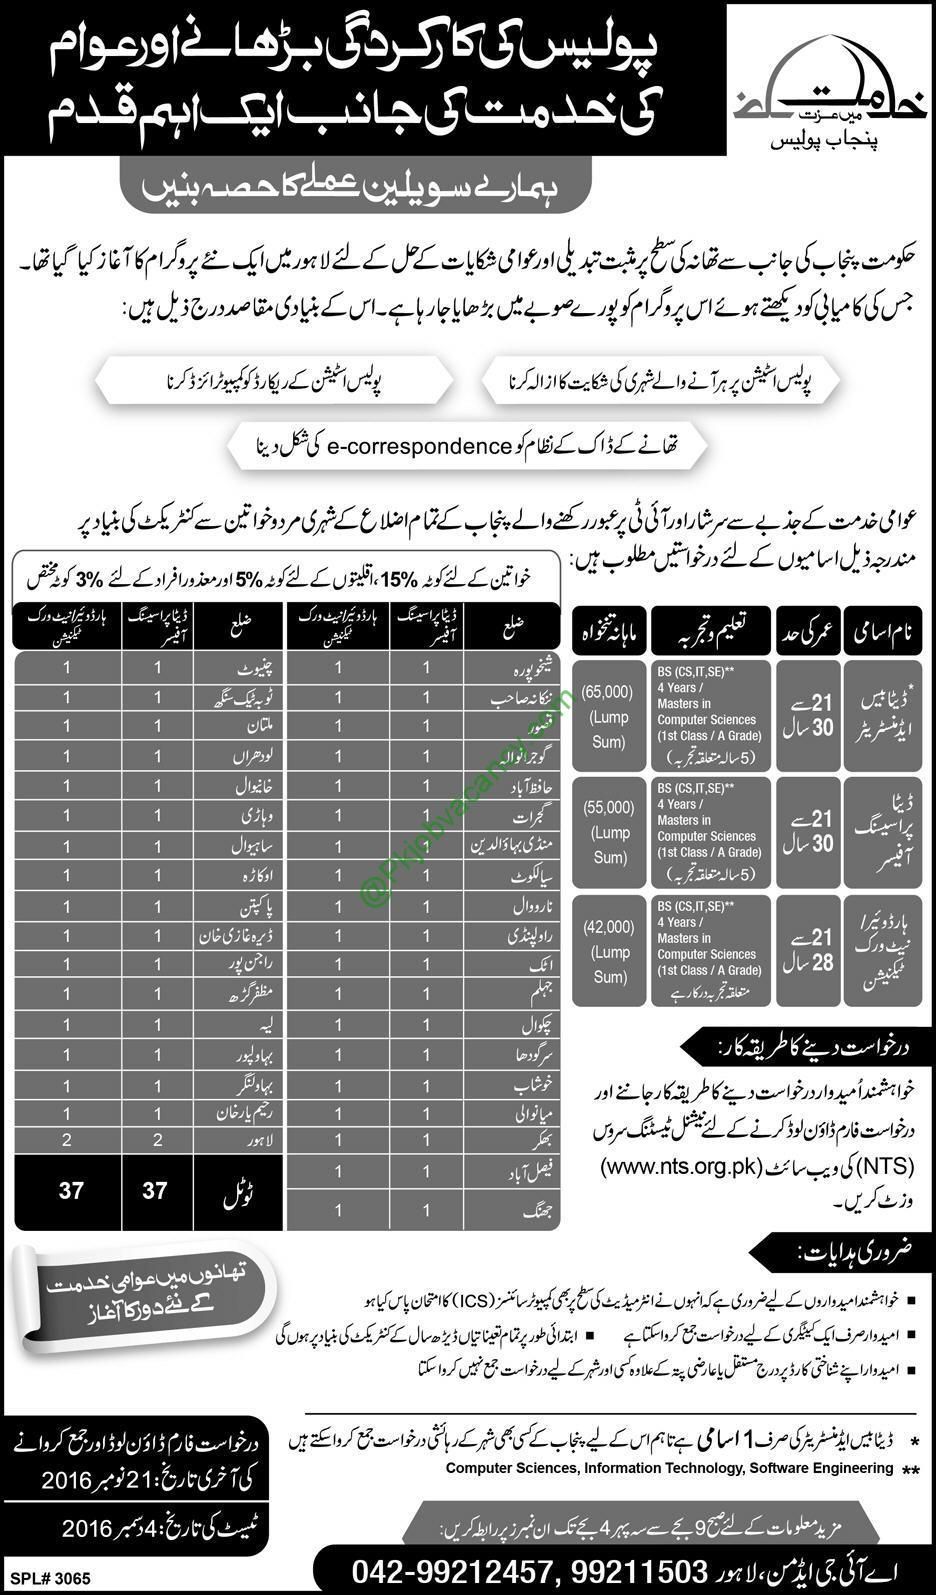 Punjab police jobs available for it for punjab application form punjab police jobs available for it for punjab application form download from nts falaconquin